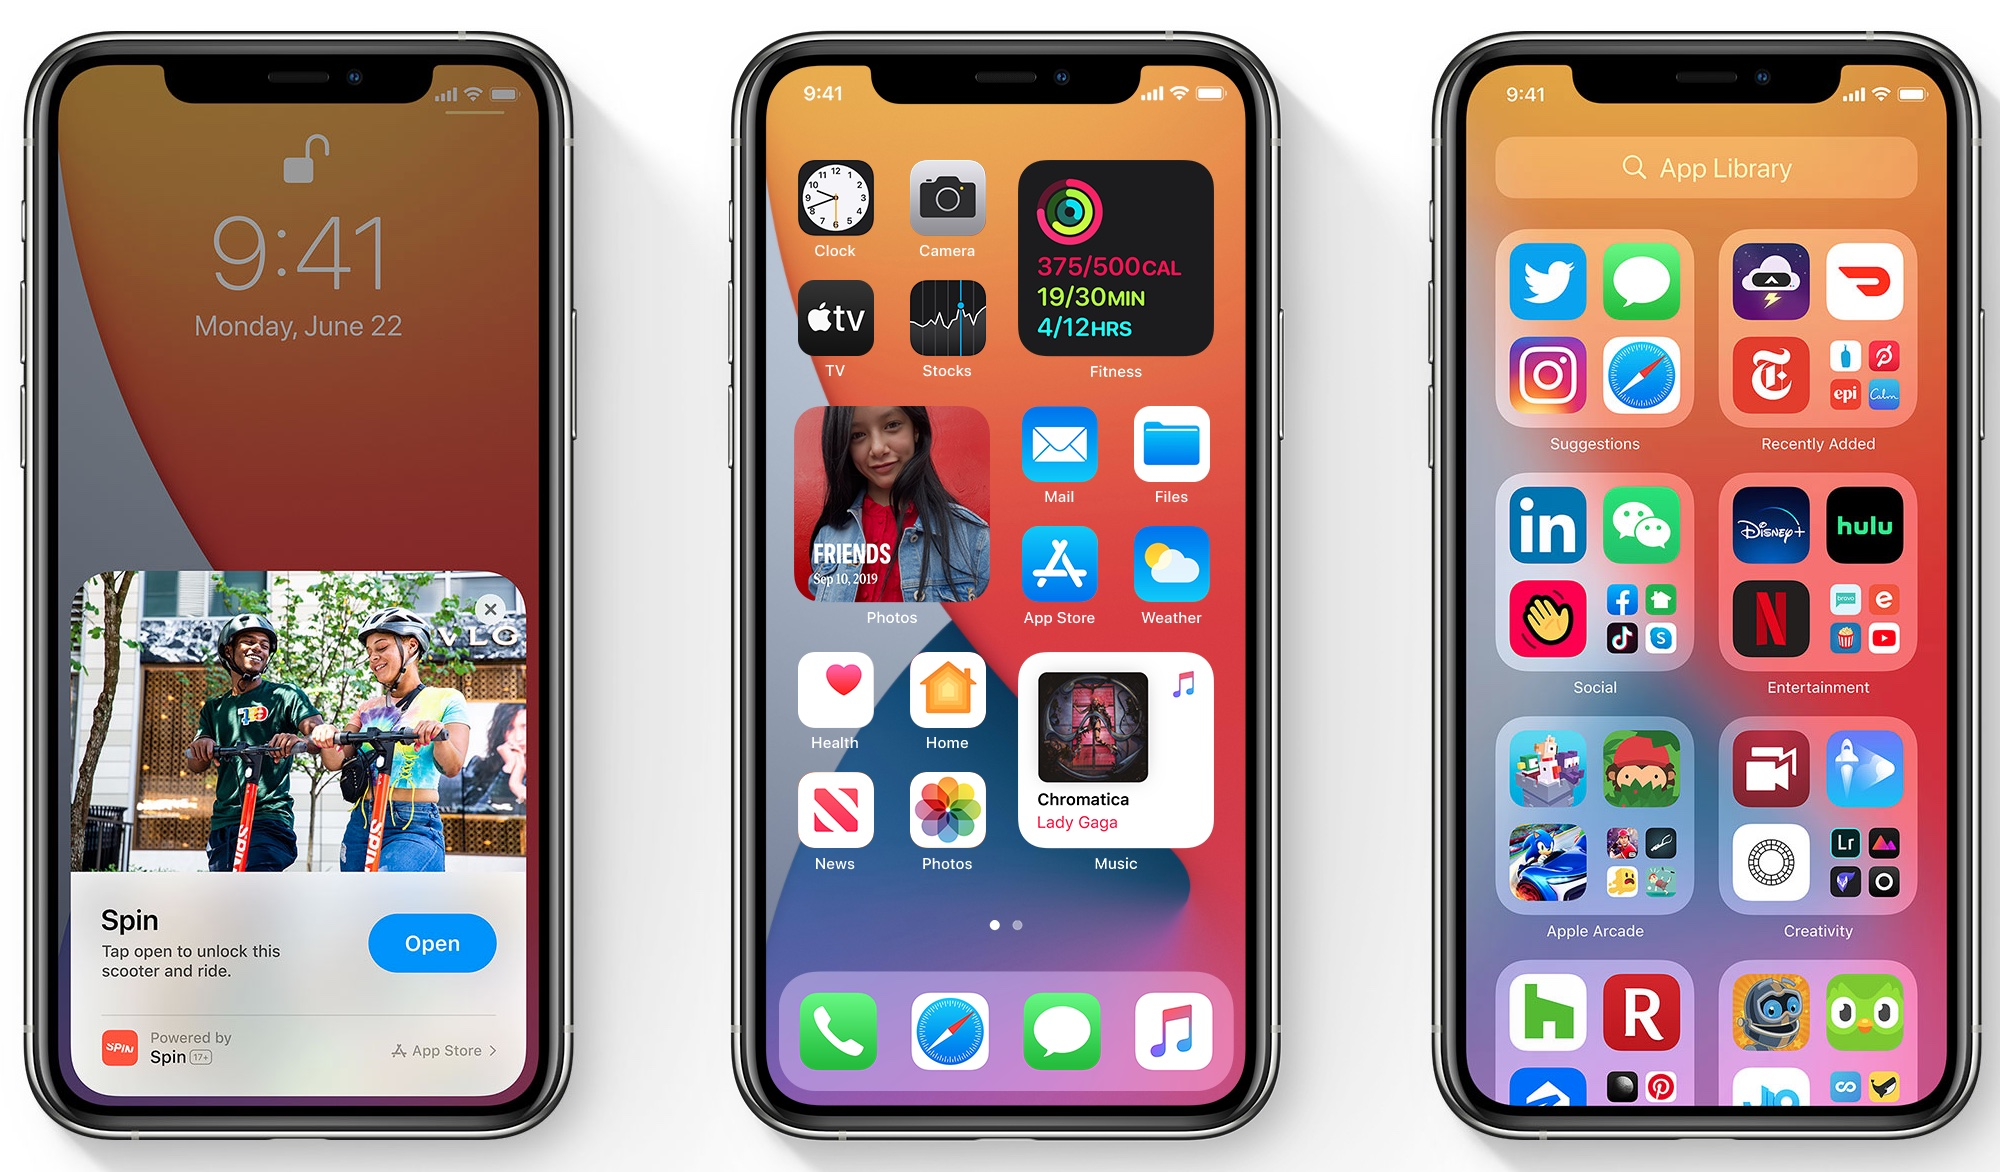 Apple releases first public beta of iOS 14, home screen redesigned-cnTechPost